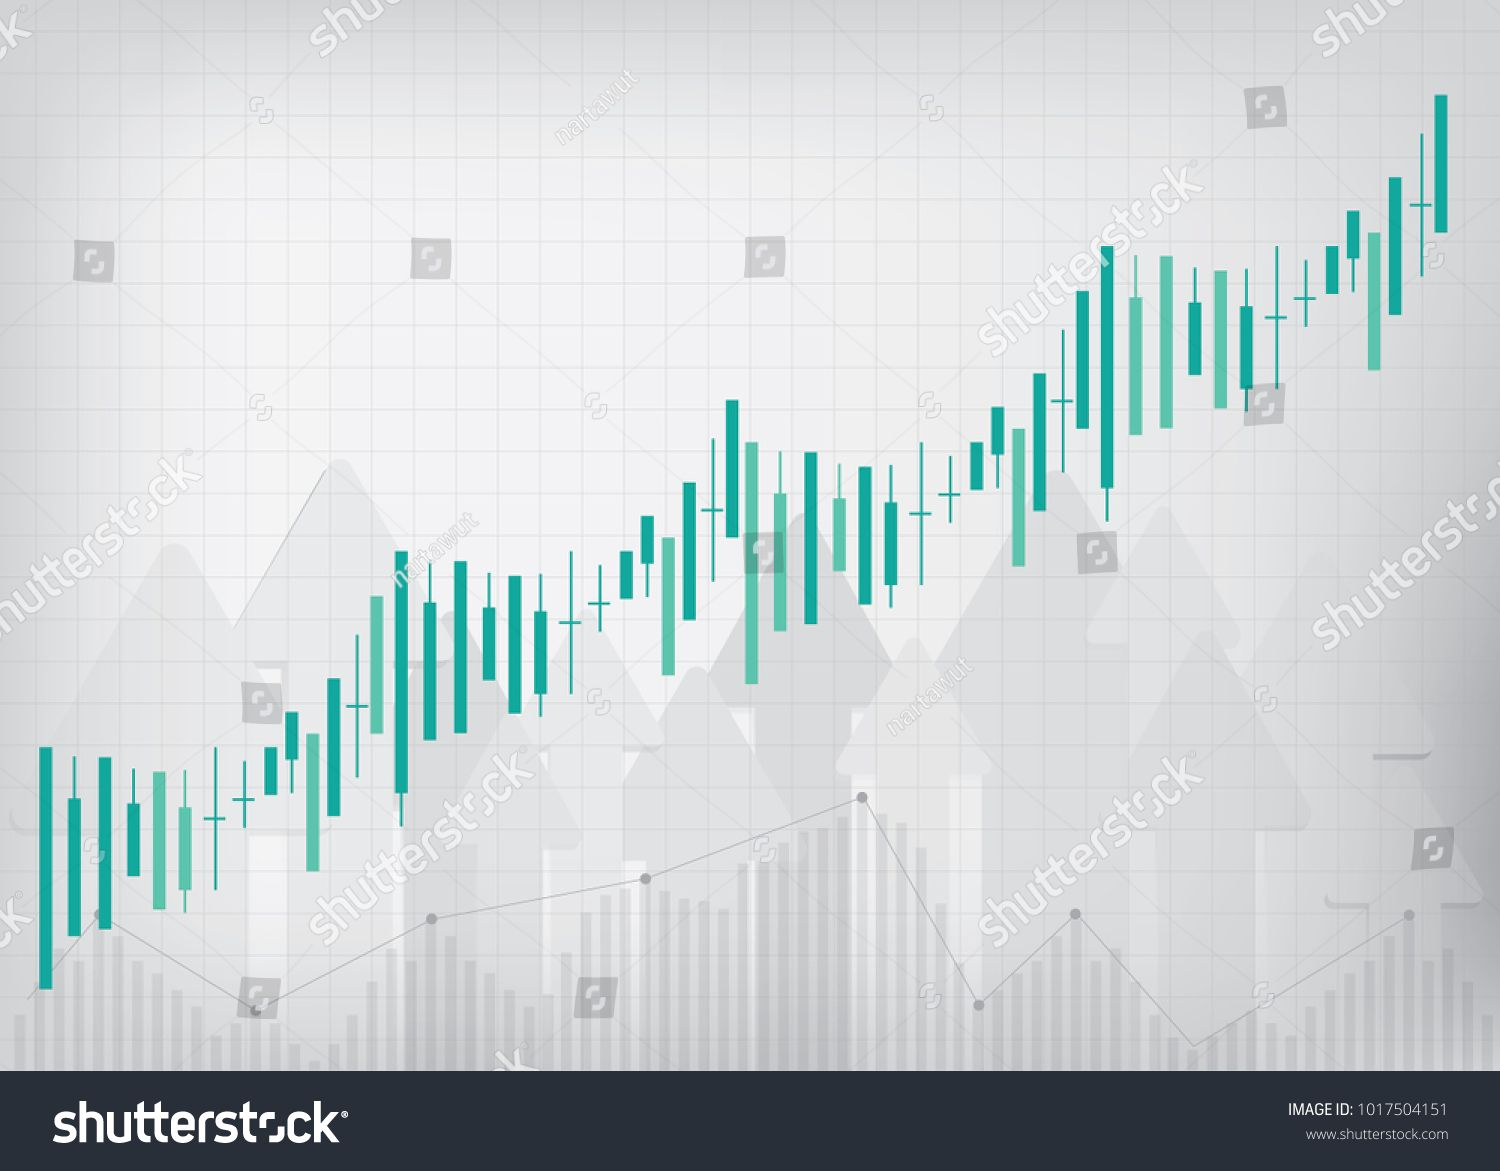 Uptrend Line Graph Stock Market Candlestick Chart Strength Arrow Symbol Show Up The Power To Make Graph Trends On Grad Line Graphs Candlestick Chart Graphing